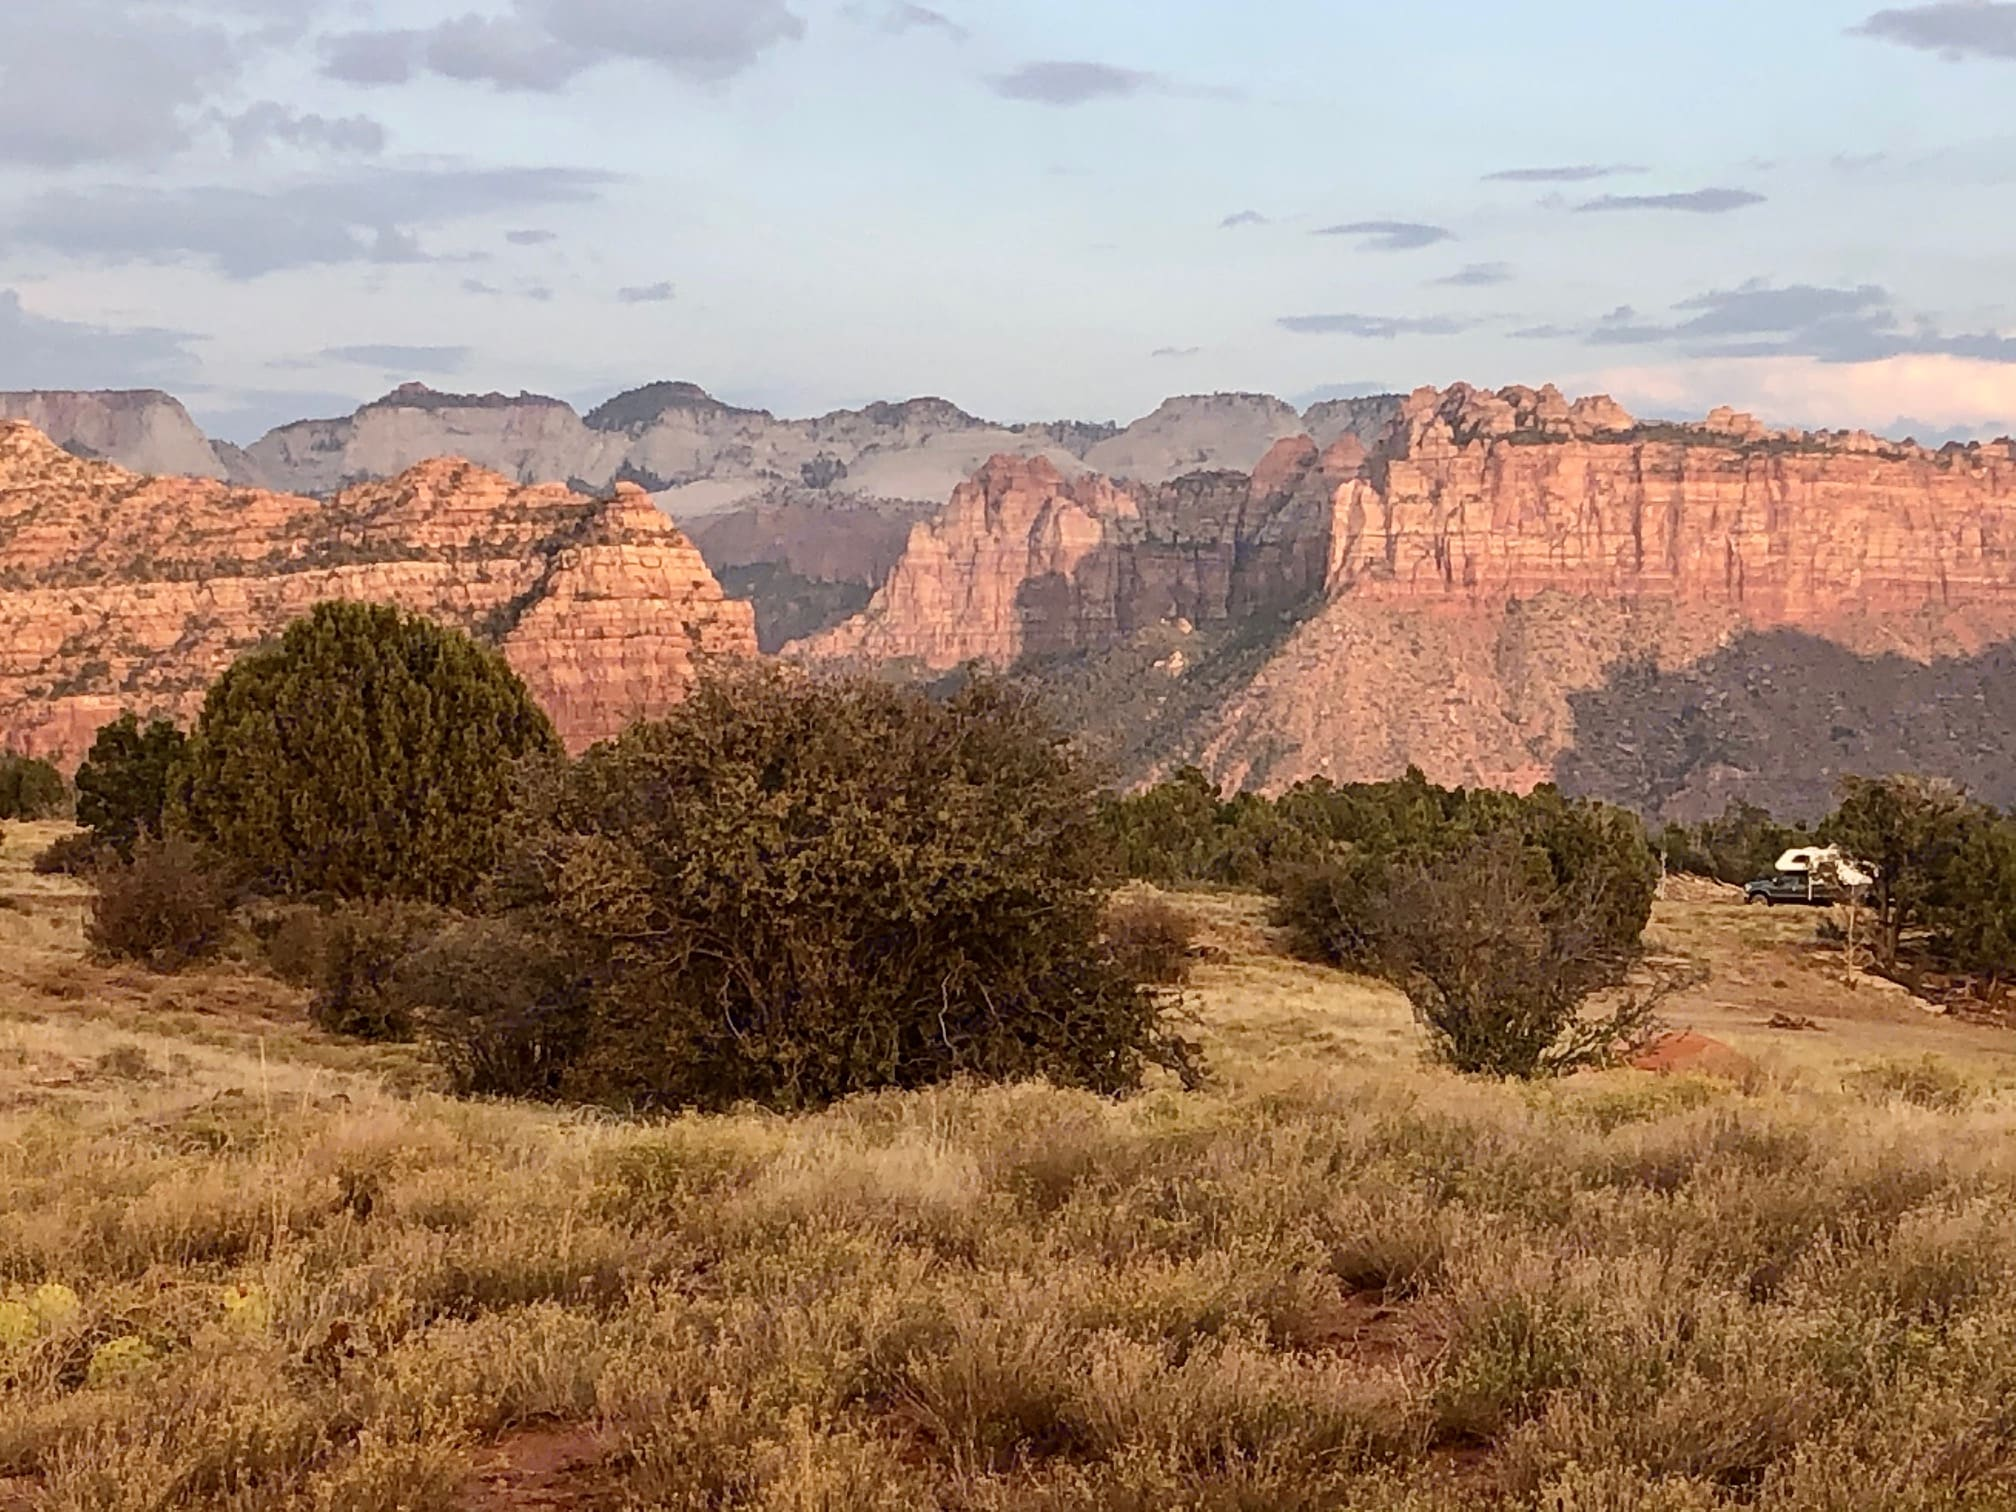 Our incredible view looking out towards Zion at sunset. Thor Motor Coach Tellaro 2020